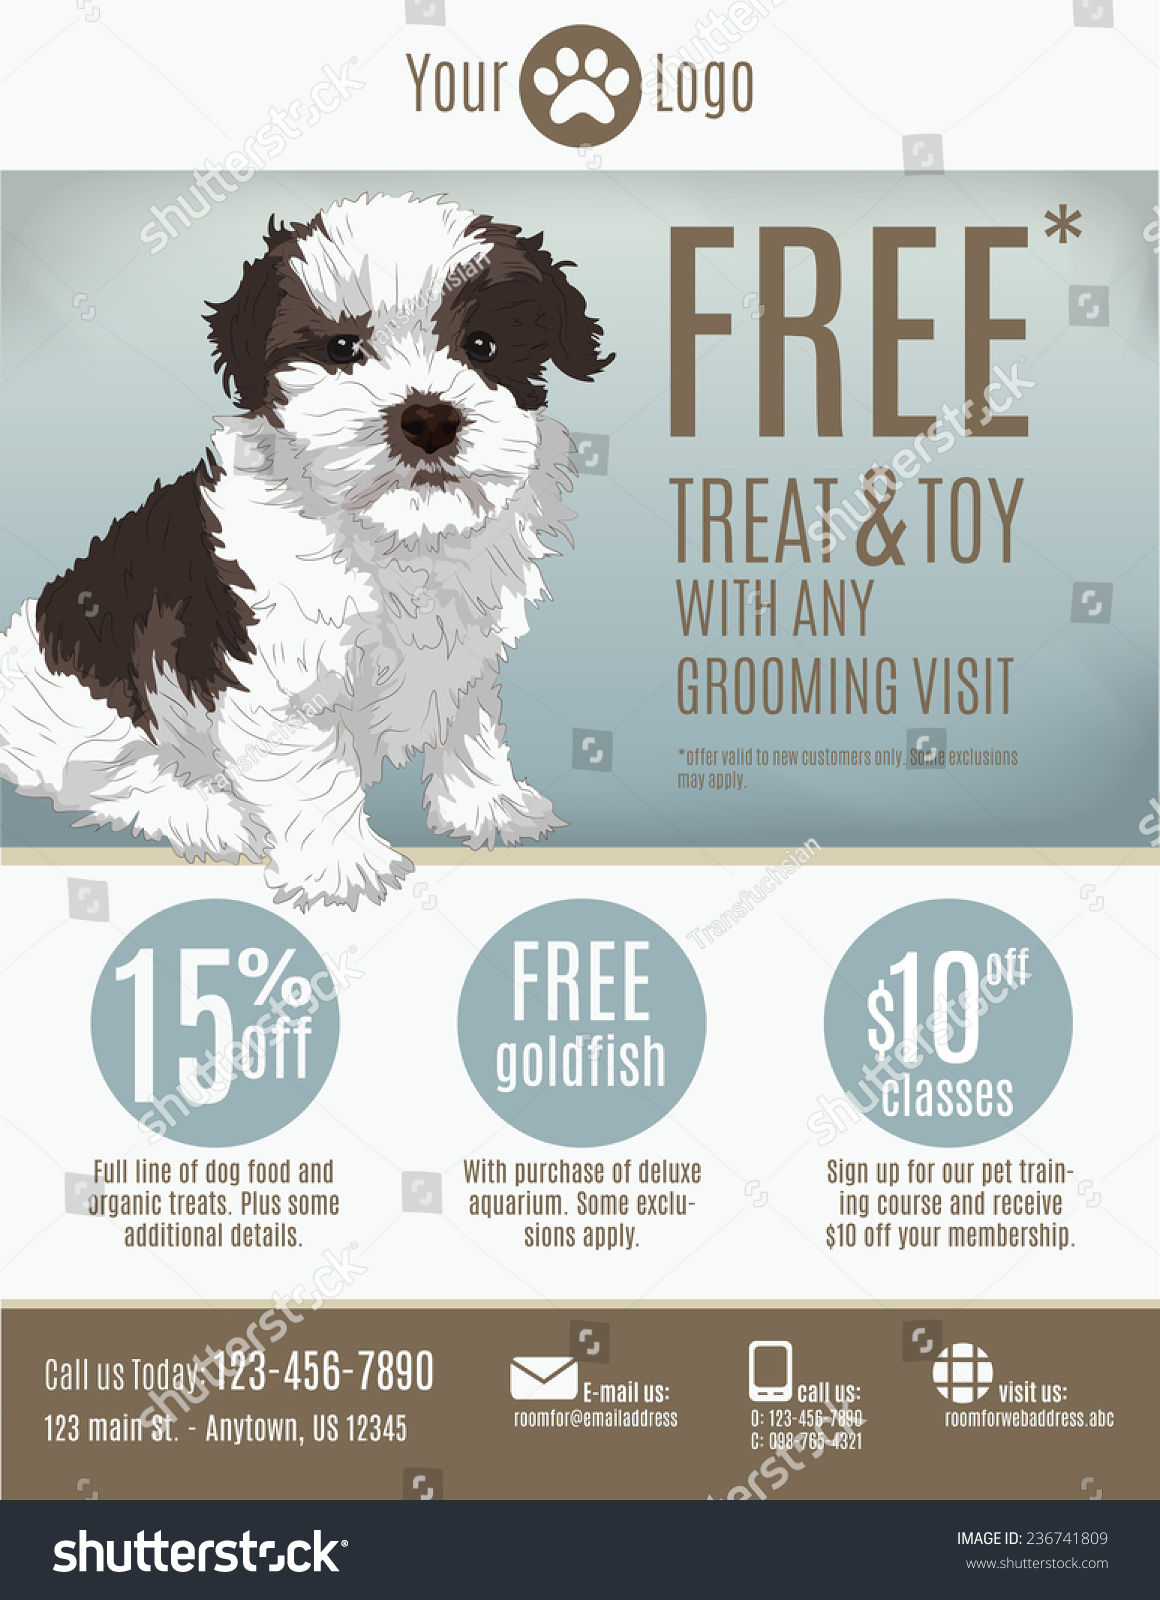 flyer template pet store groomer discount stock vector  flyer template for a pet store or groomer discount coupons and advertisement featuring a cute